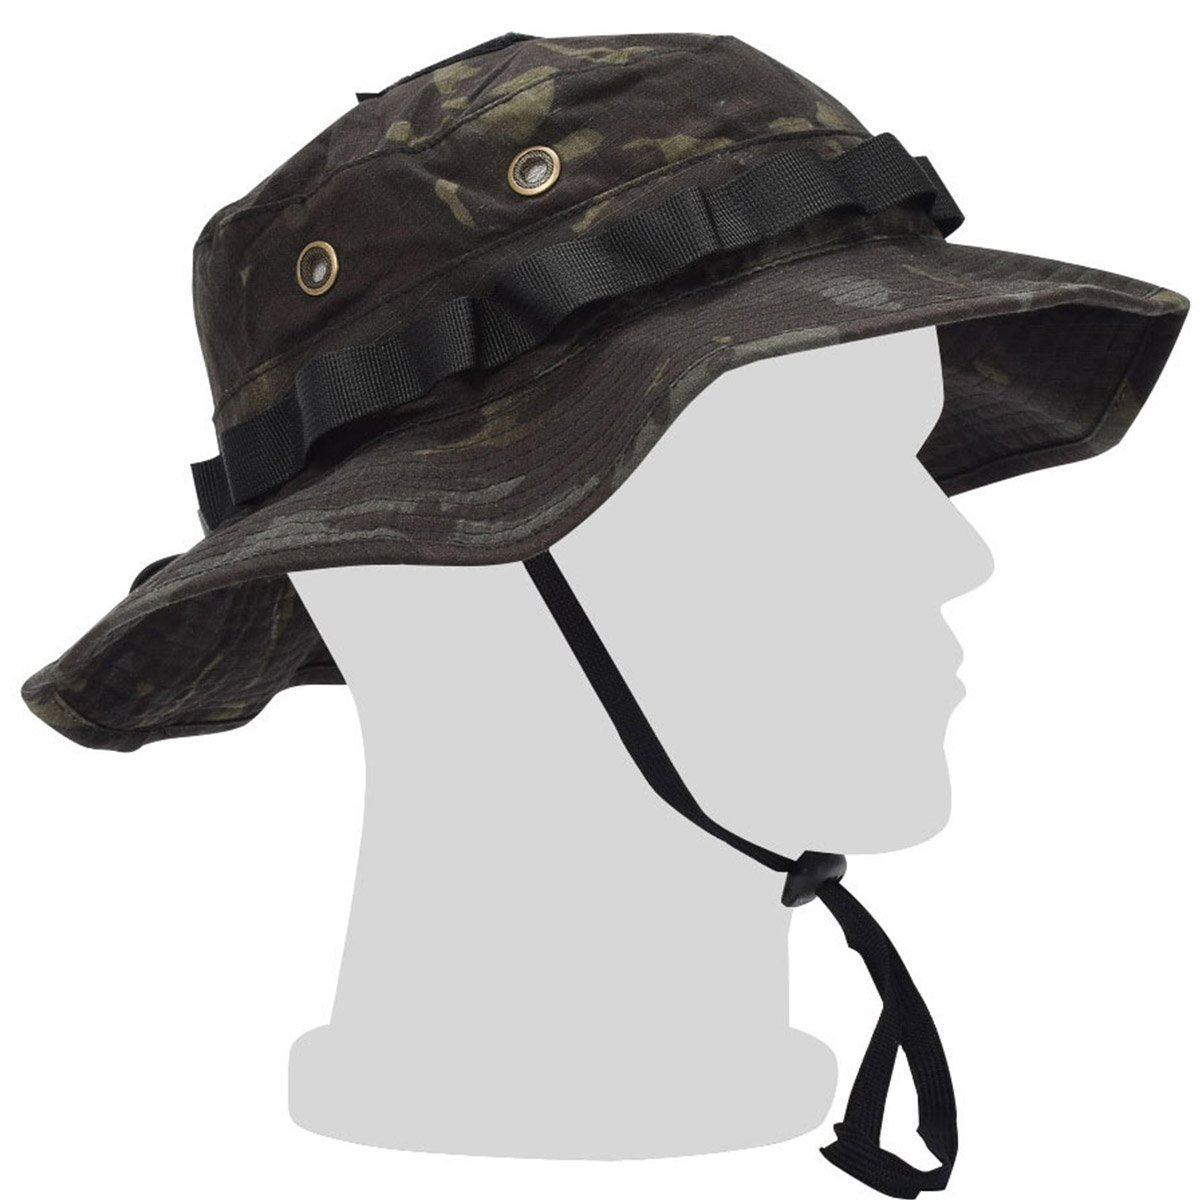 c543a10b Get Quotations · EMERSONGEAR USMC Military Boonie Hat Outback Summer  Tactical Camo Fishing Camping Hunting Sun Cap